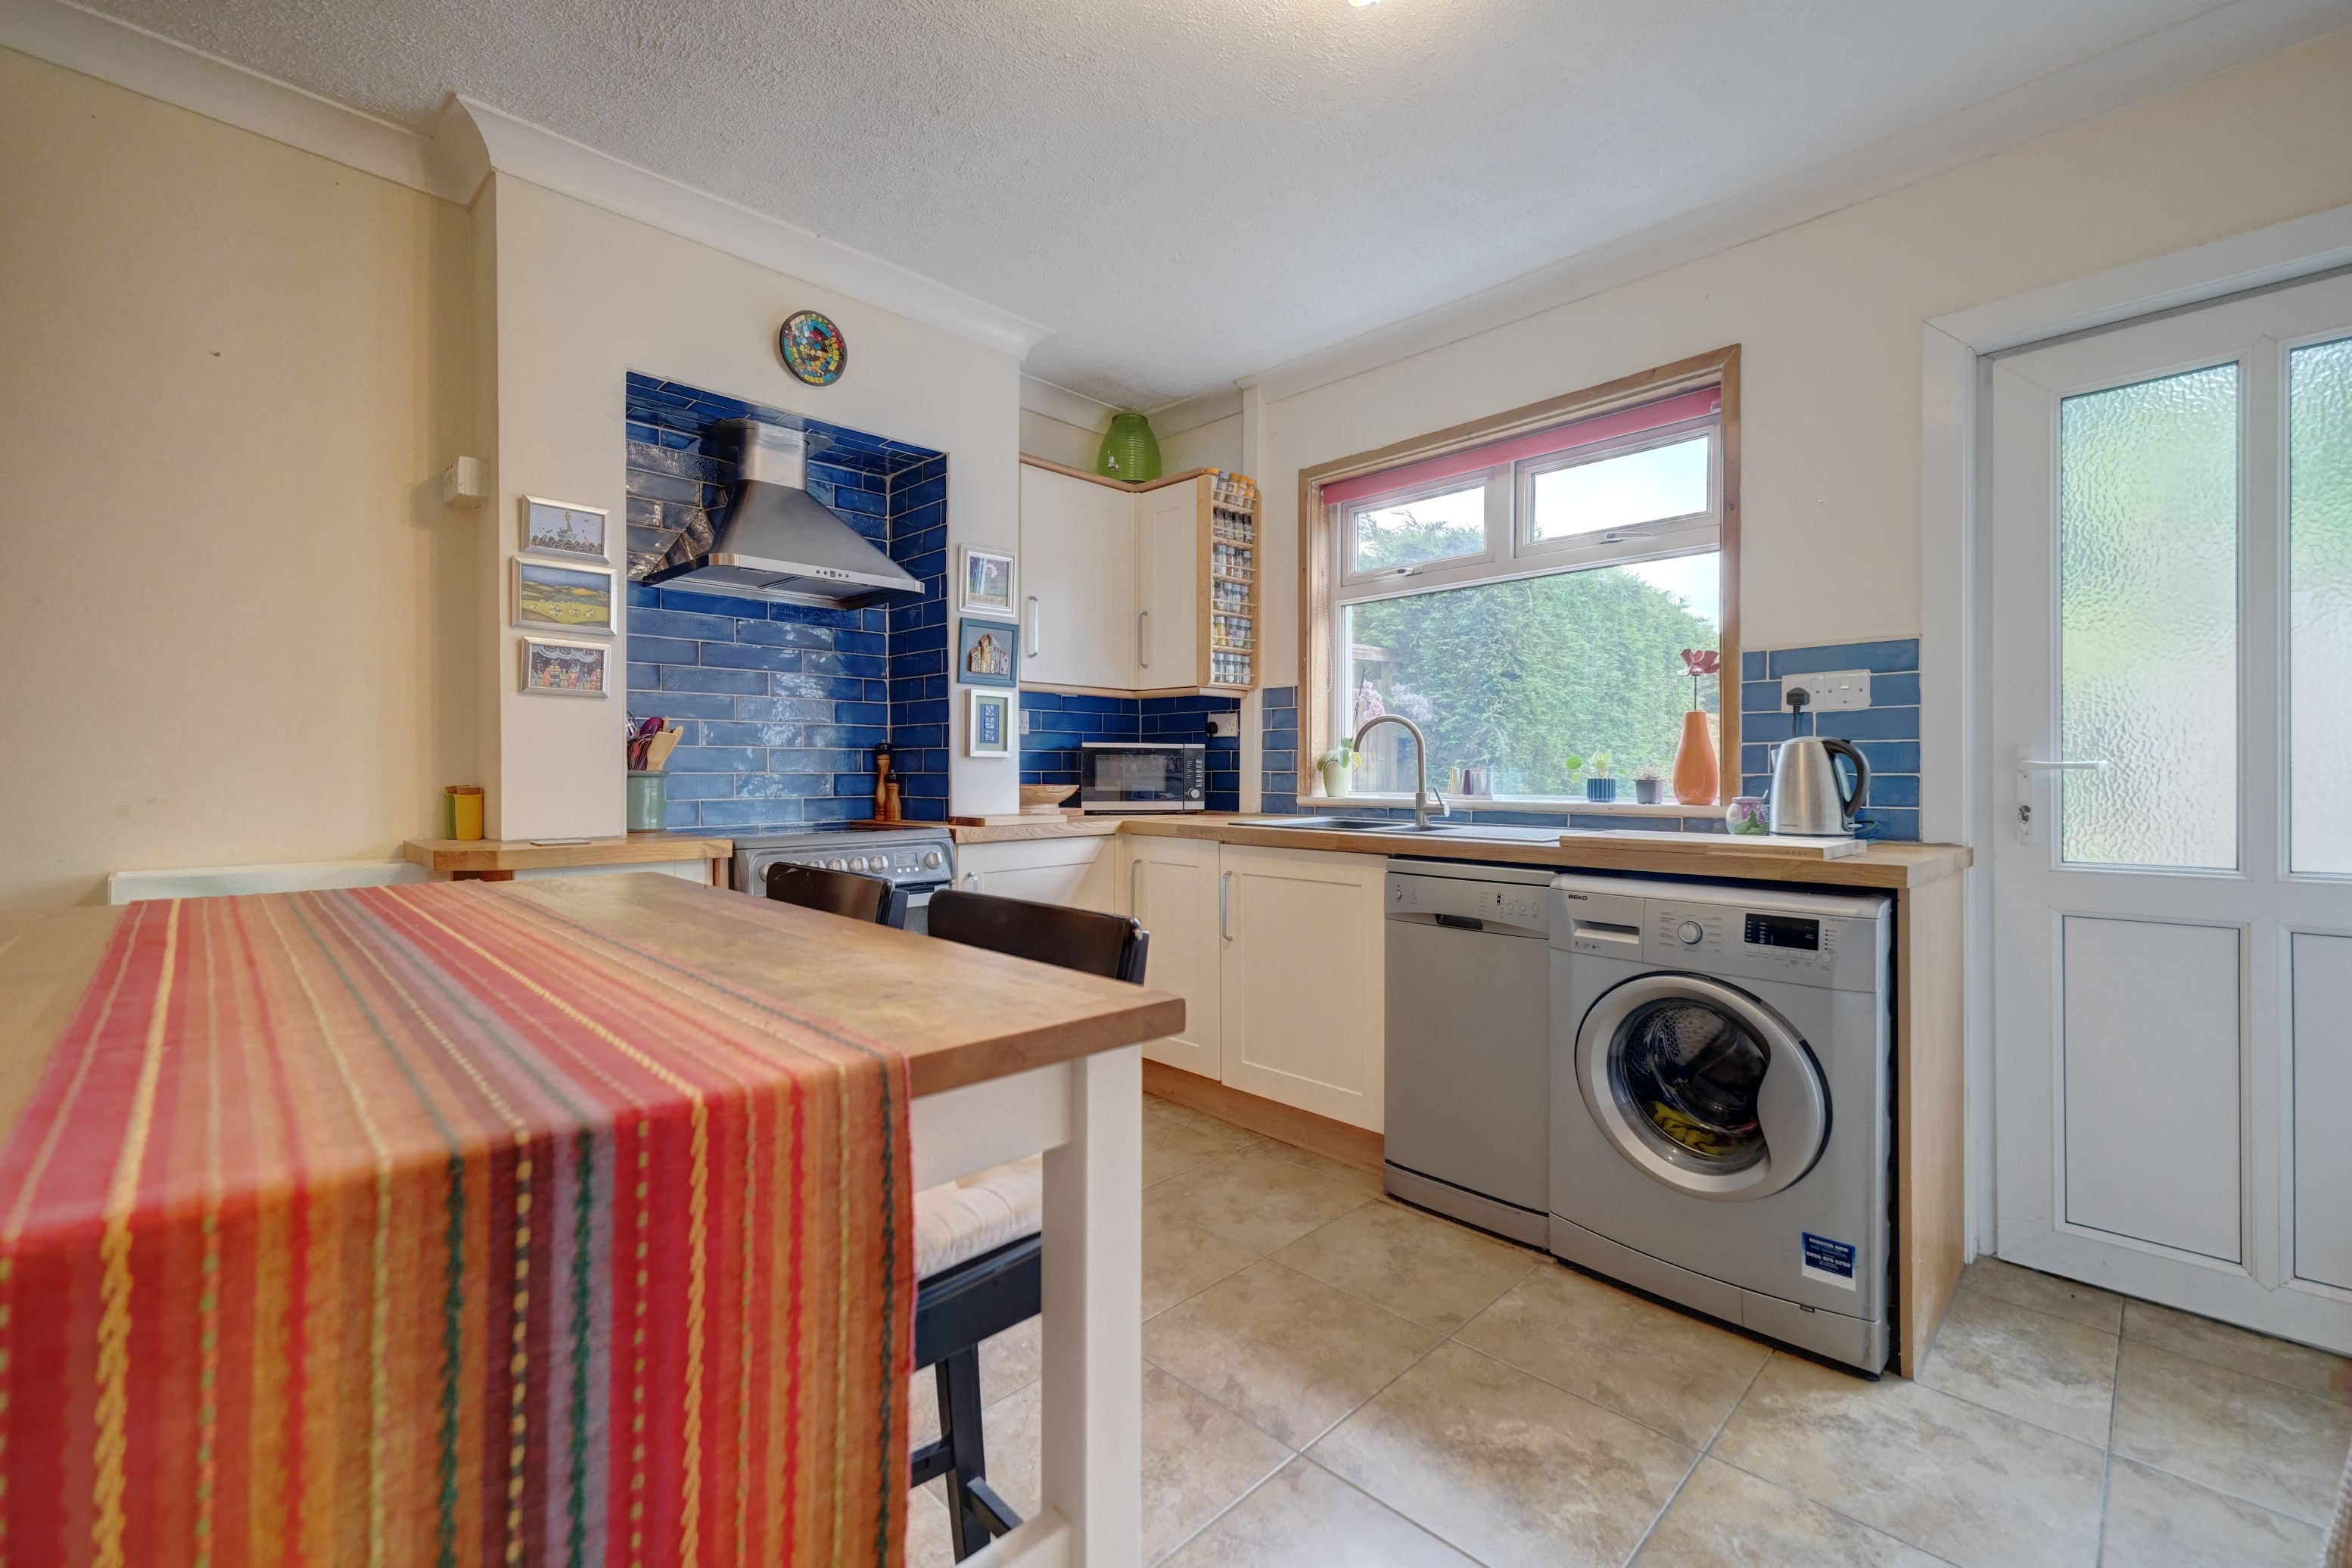 2 bed terraced house for sale in Charnwood Road, Hinckley, LE10, Hinckley - Property Image 1